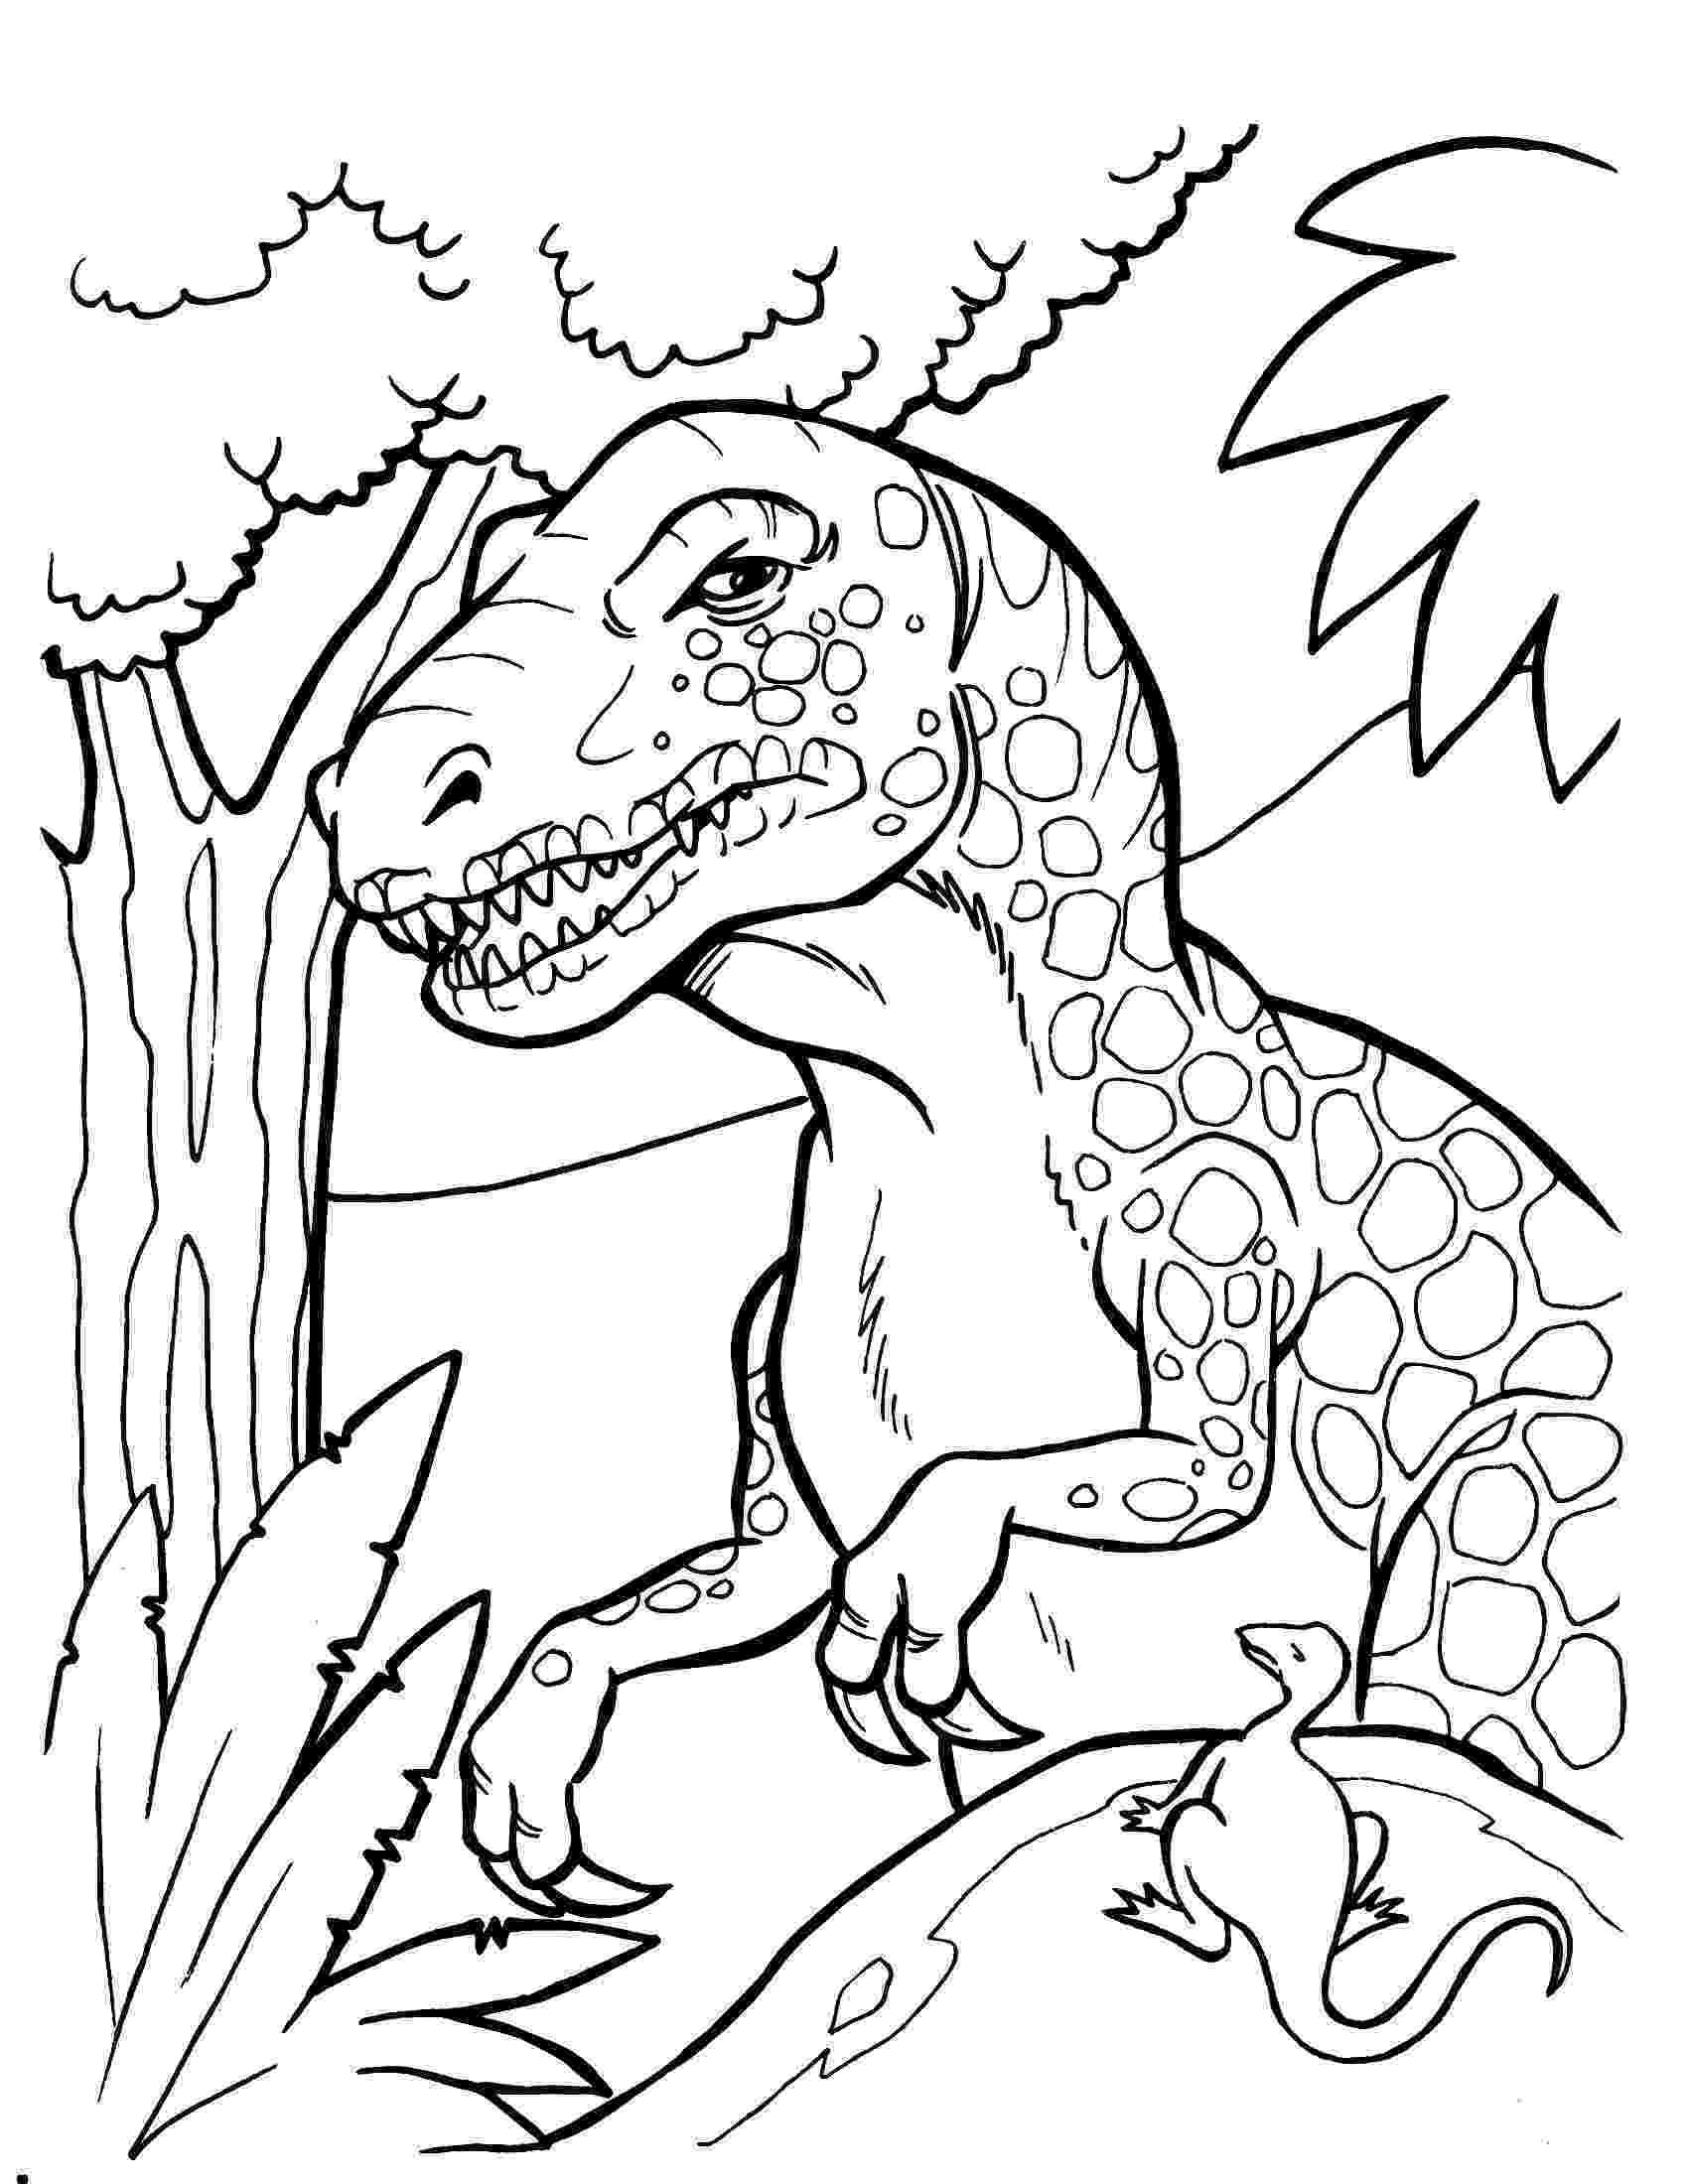 dinosaur colouring pages free printables printable dinosaur coloring pages for kids cool2bkids pages printables dinosaur free colouring